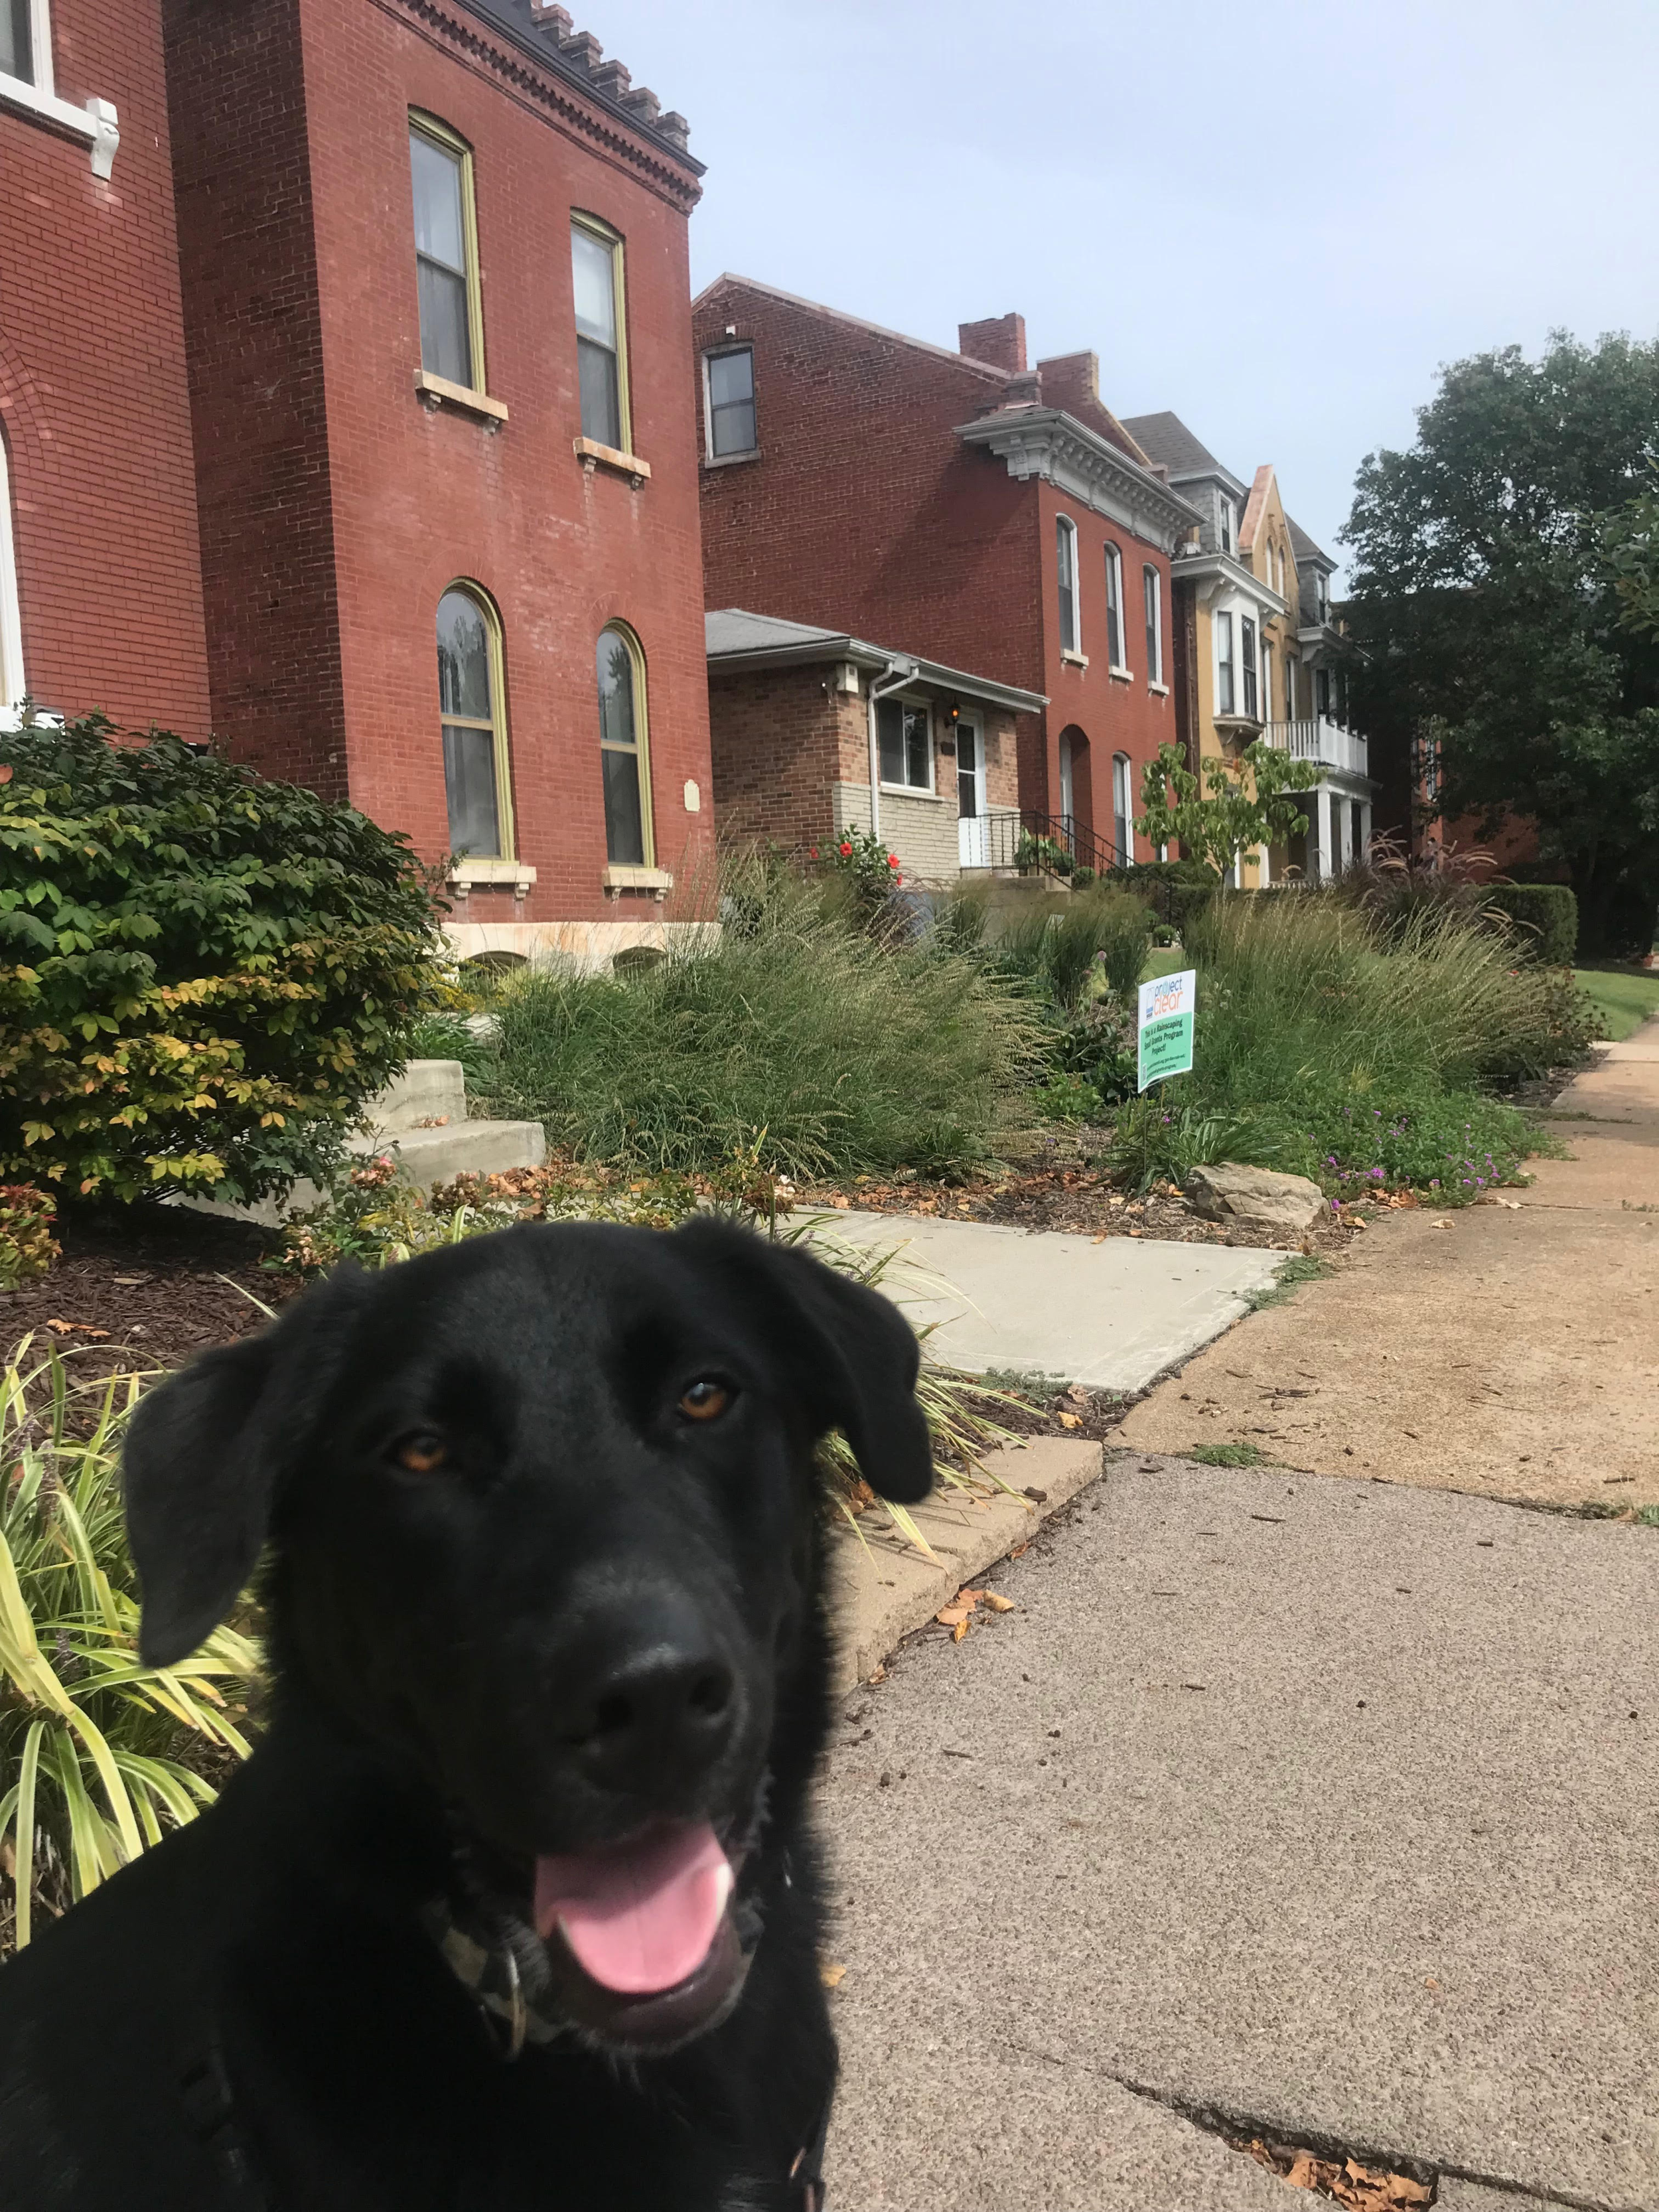 Zozo shows off a few of his neighbors: a larger single family, a smaller single family bungalow, a single family converted to a top/bottom duplex, and a four-family.